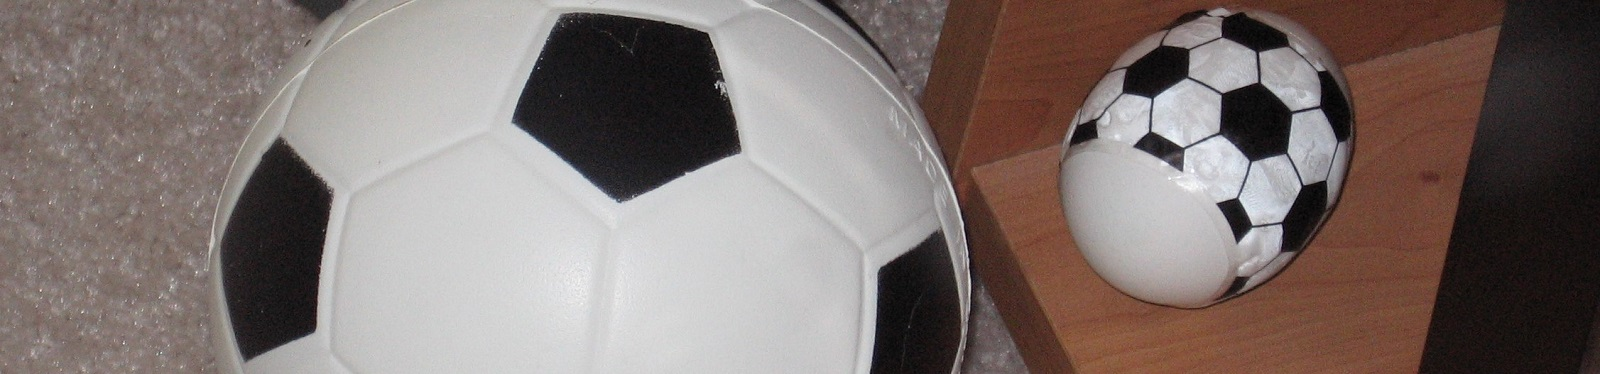 Soccer Ball and Decorated Egg